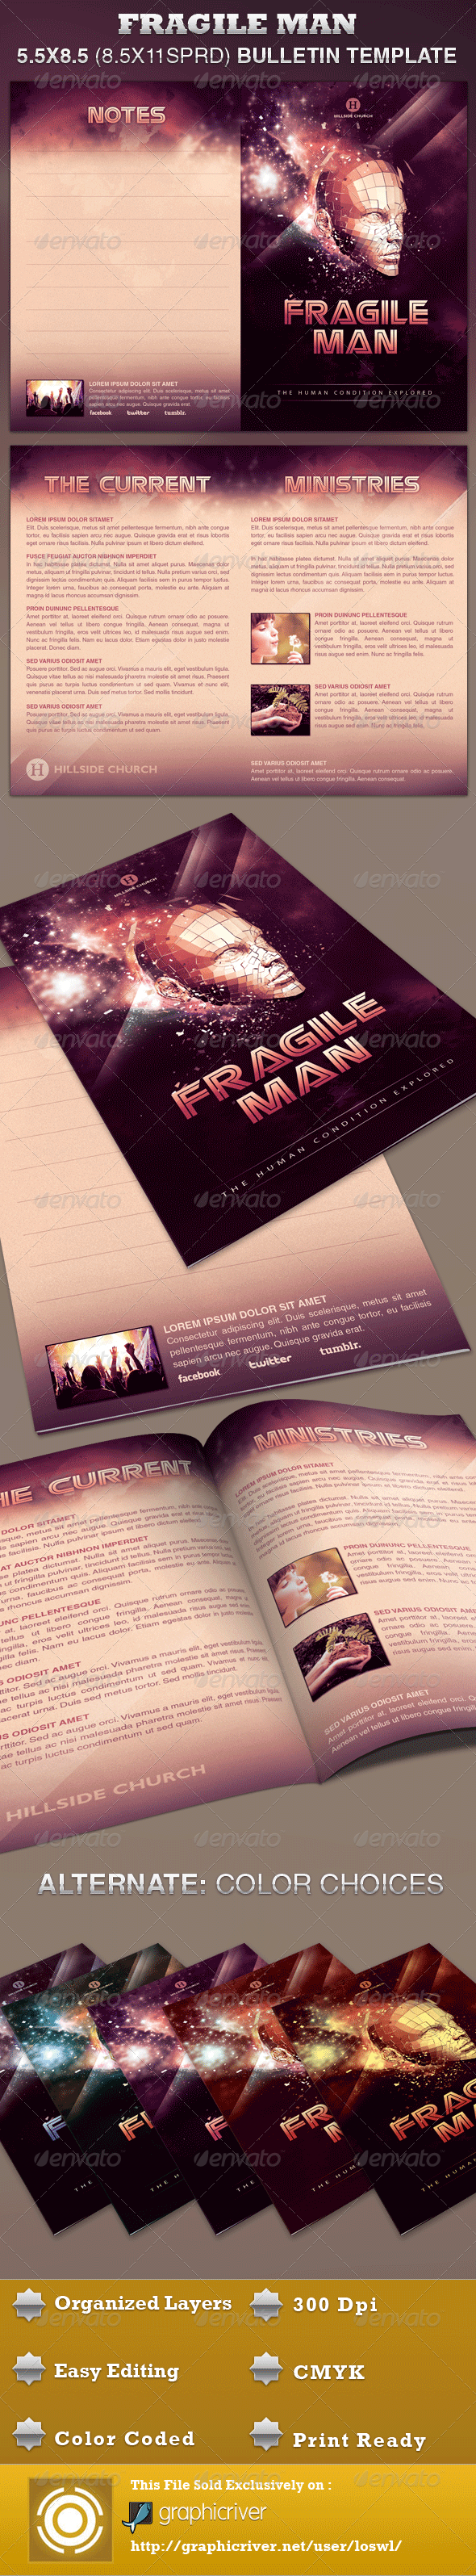 GraphicRiver Fragile Man Church Bulletin Template 3337080